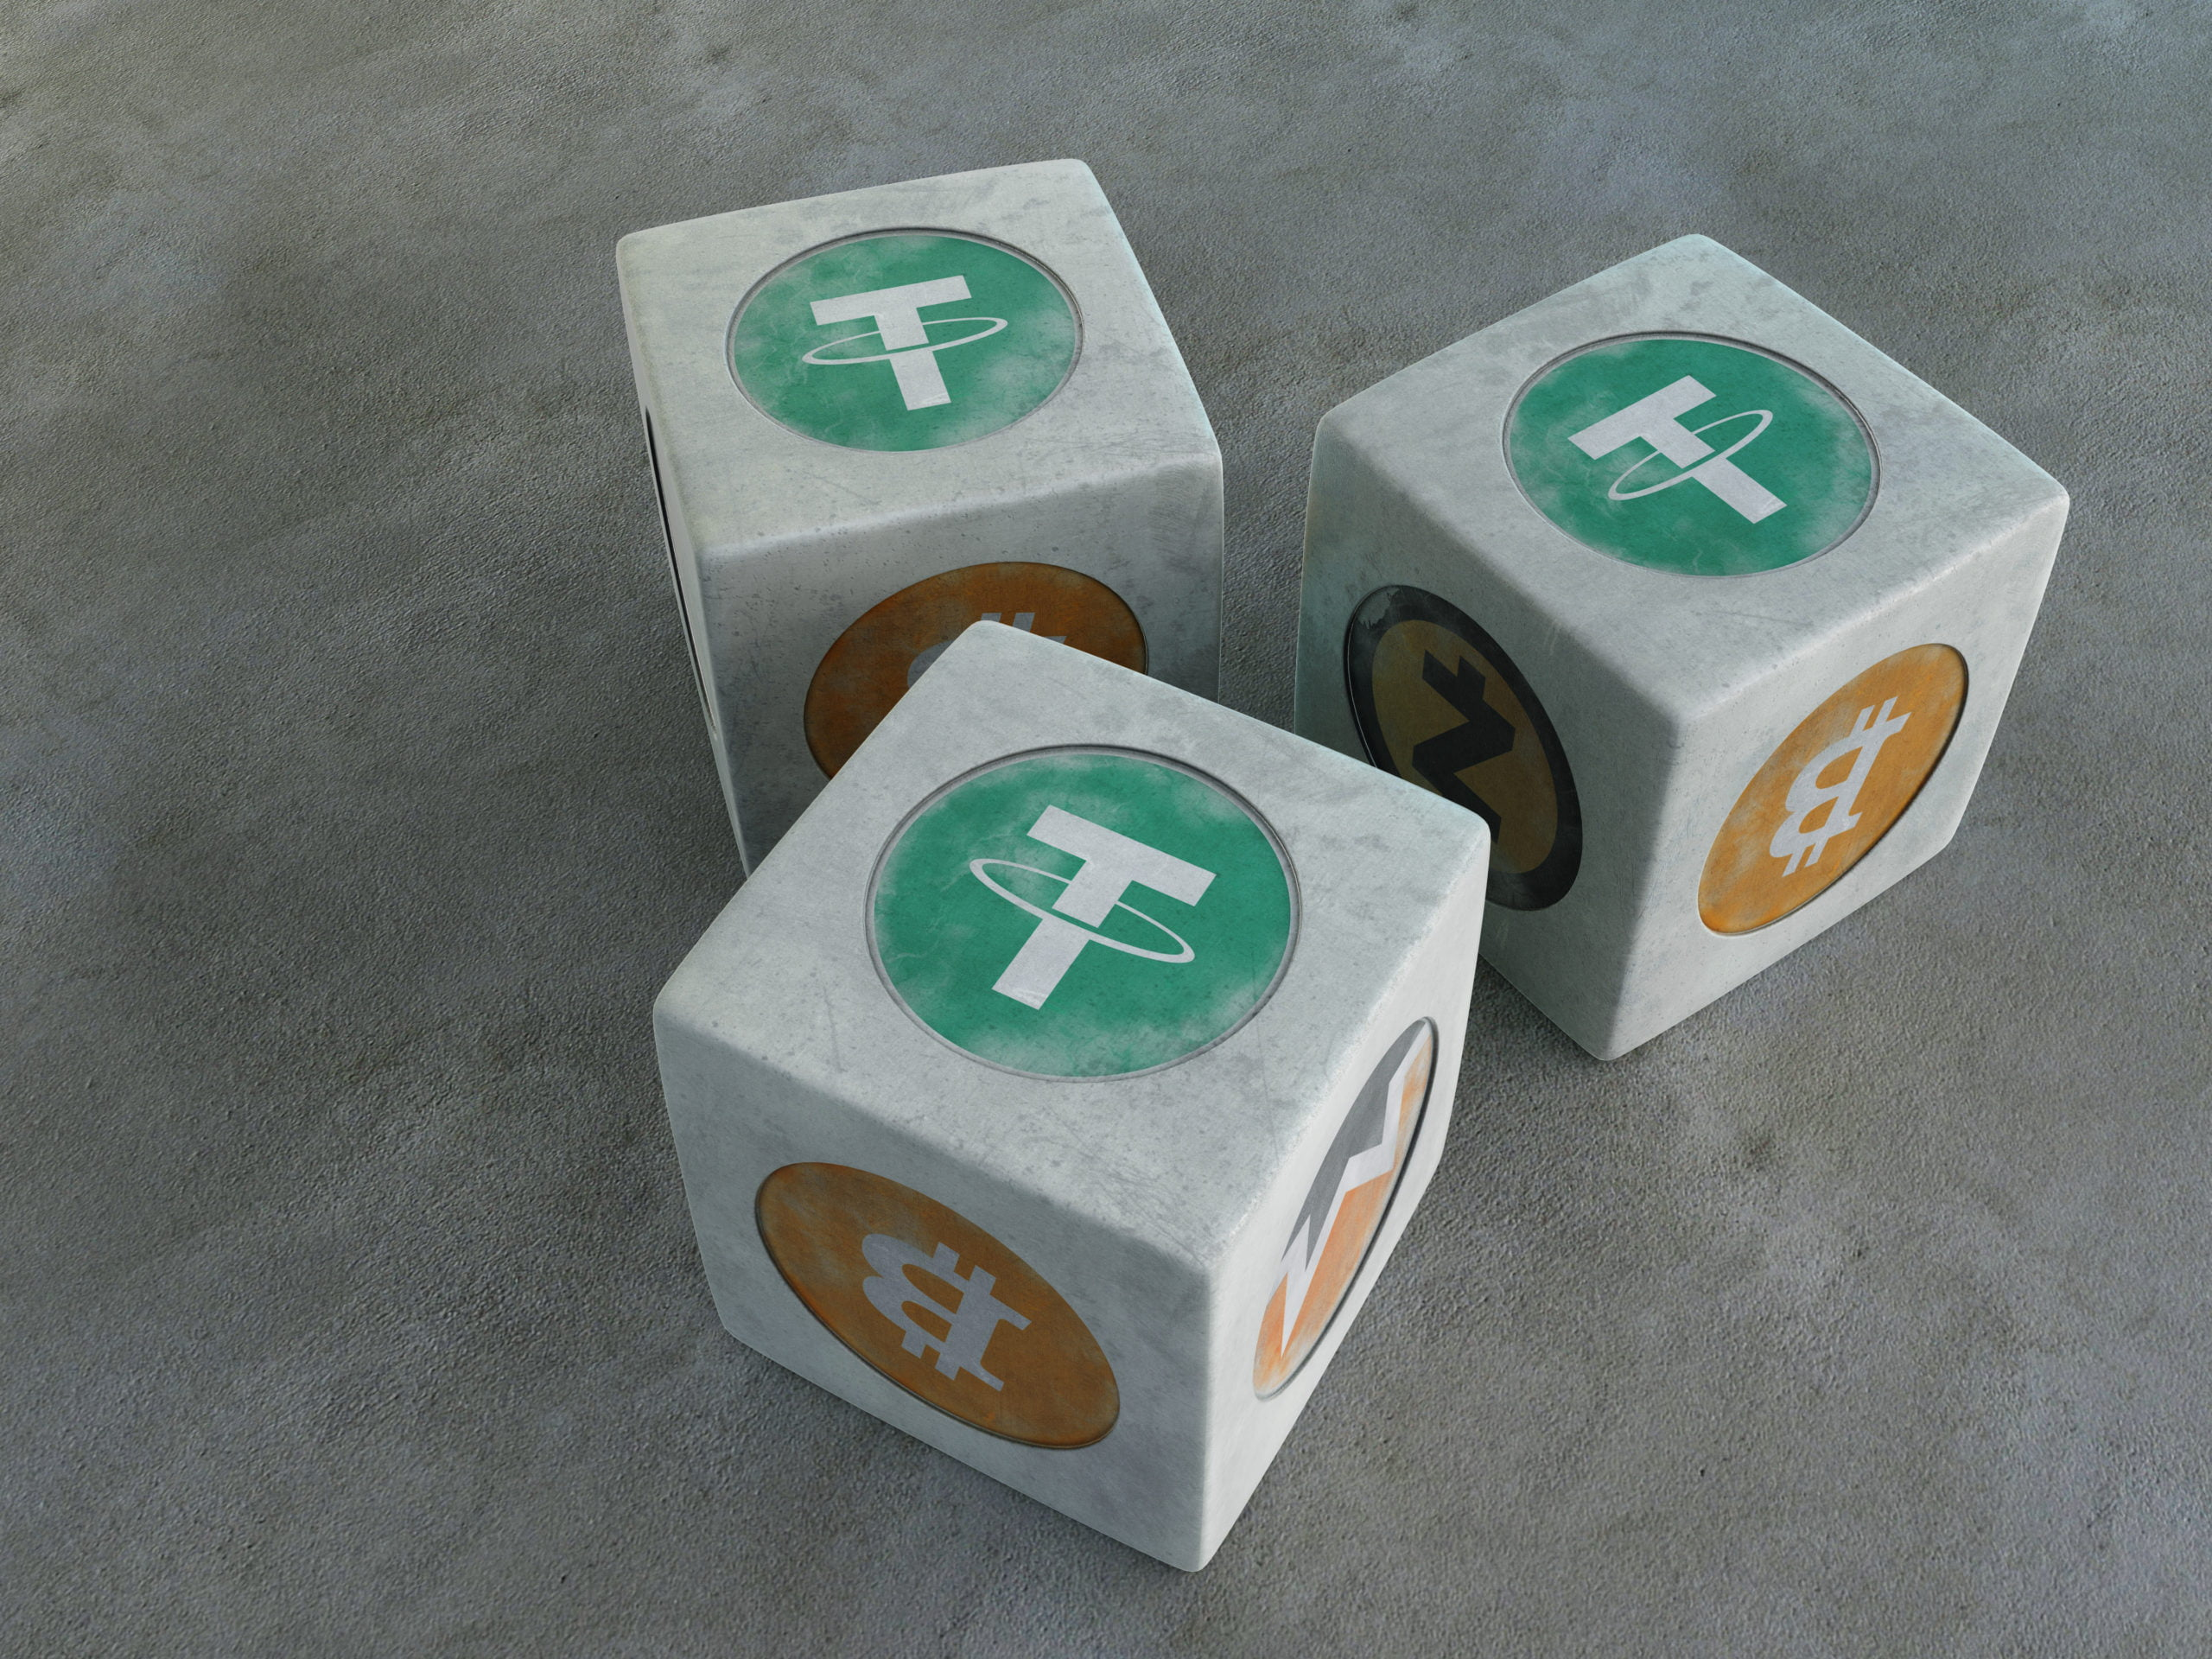 ethereum tether cryptocurrency